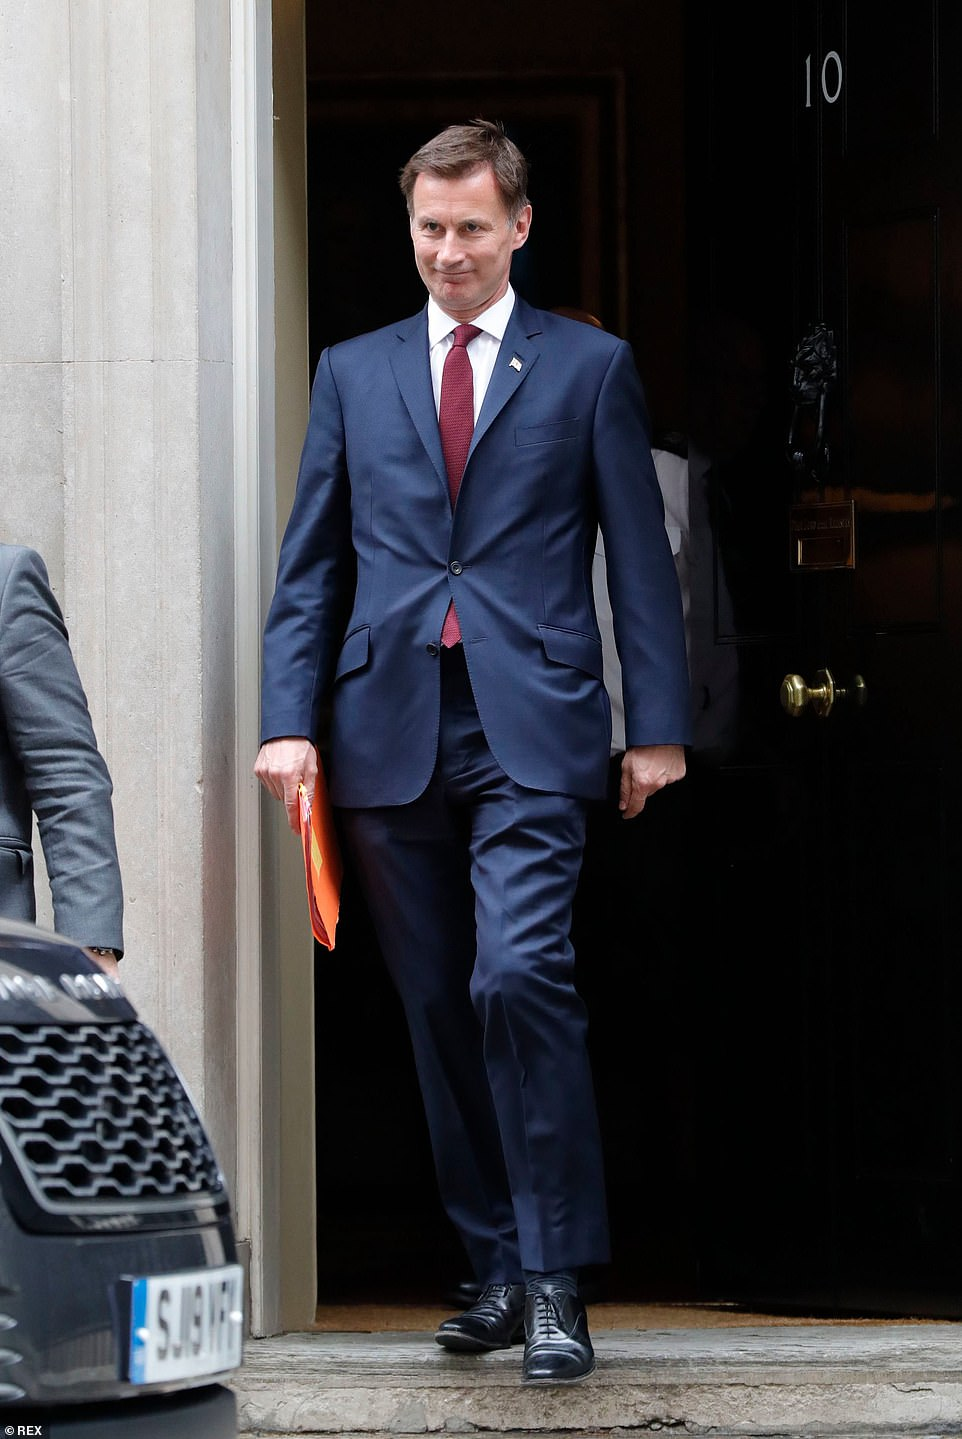 Former Health Secretary Jeremy Hunt called the situation 'very serious' and raised the prospect of another lockdown this autumn